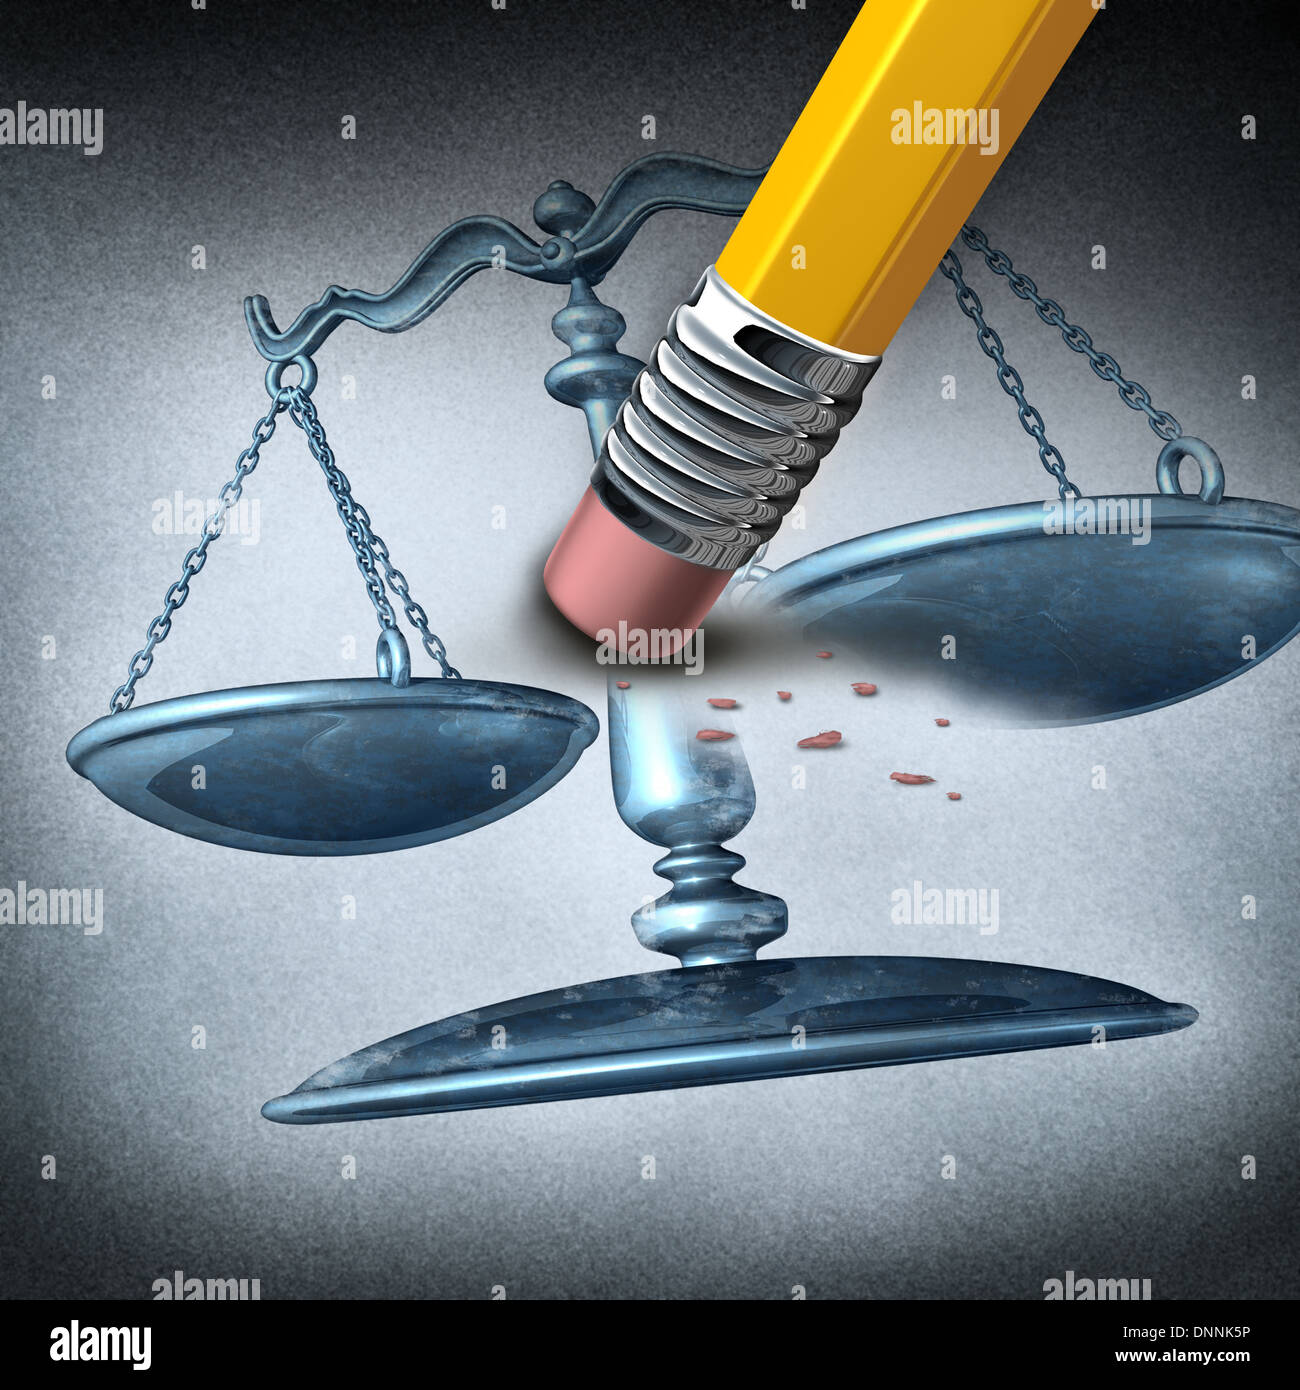 Injustice and discrimination as a legal system concept for breaking the law and performing unfair illegal acts as a pencil eraser erasing a justice scale as a metaphor for inequality and the stress of oppression. - Stock Image